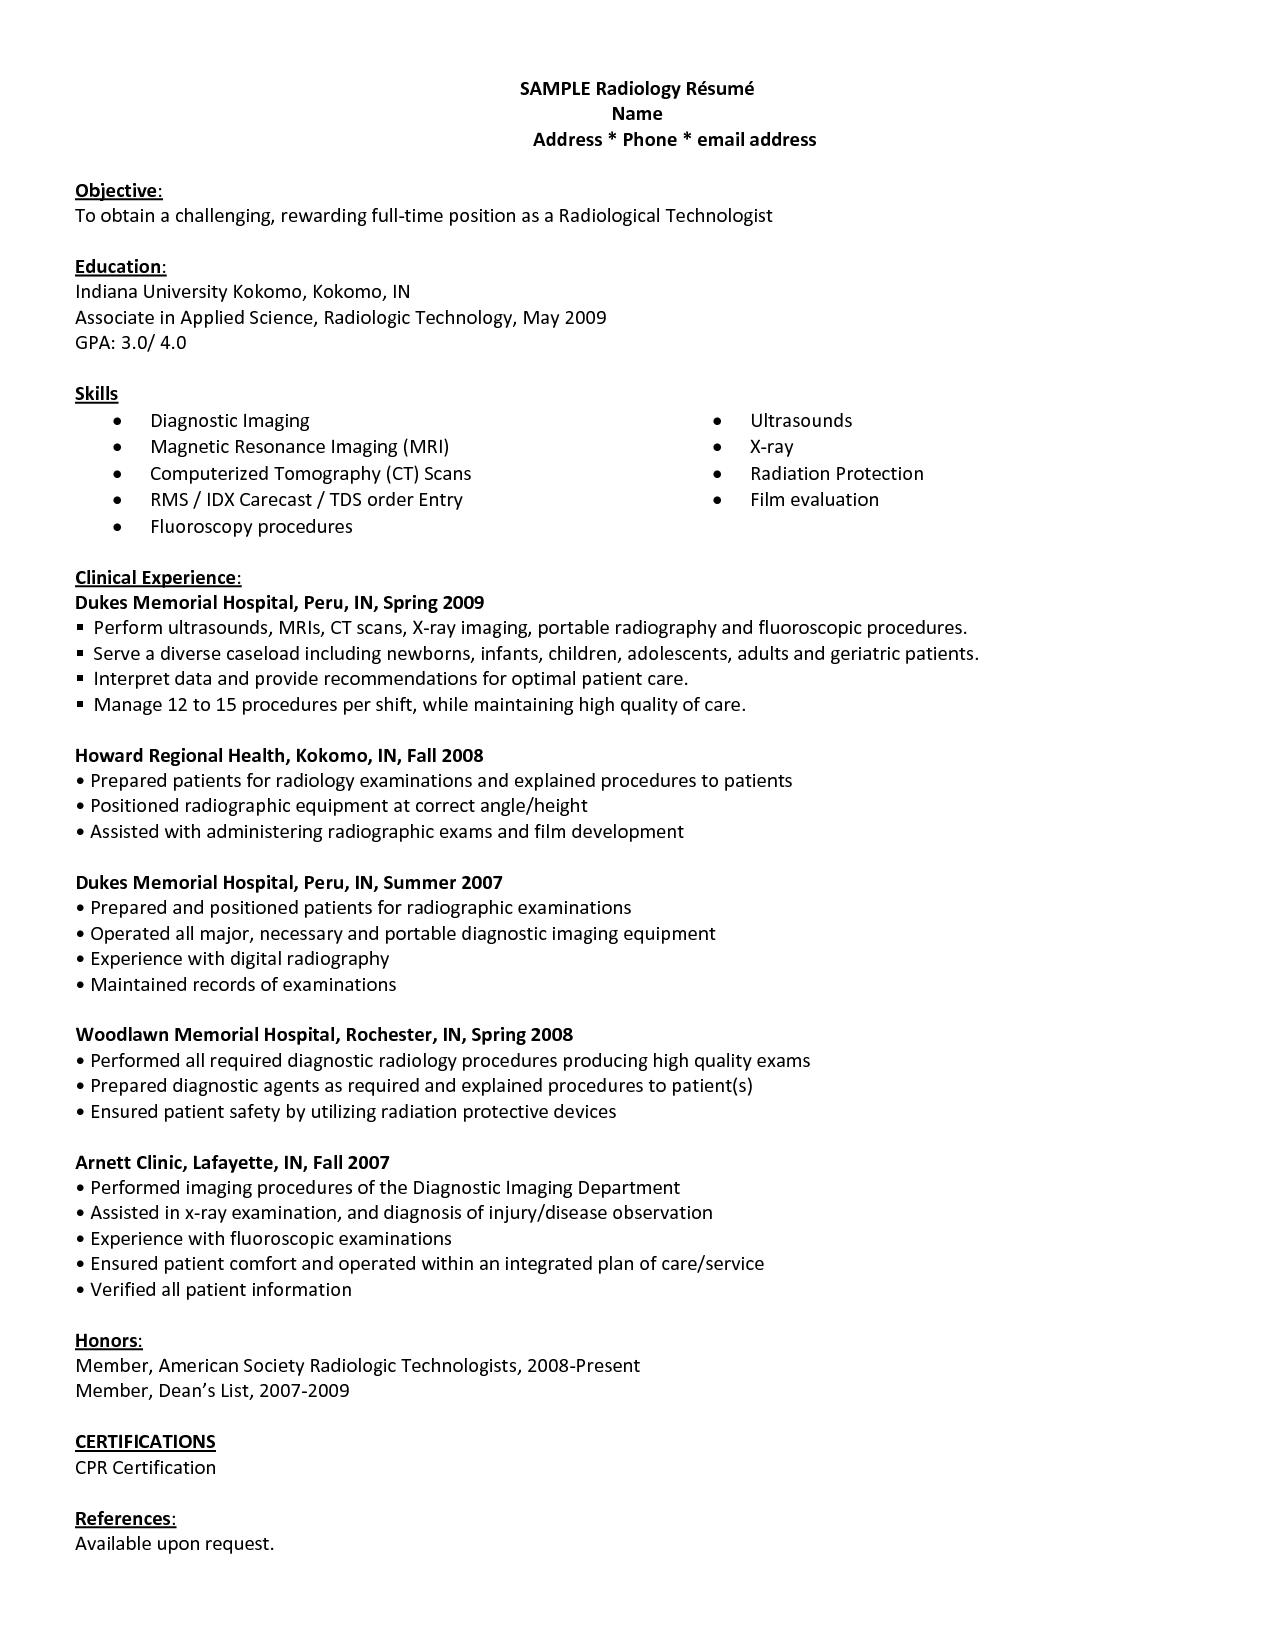 Resume Sample Radiologic Technologist Mrirad Tech Pinterest